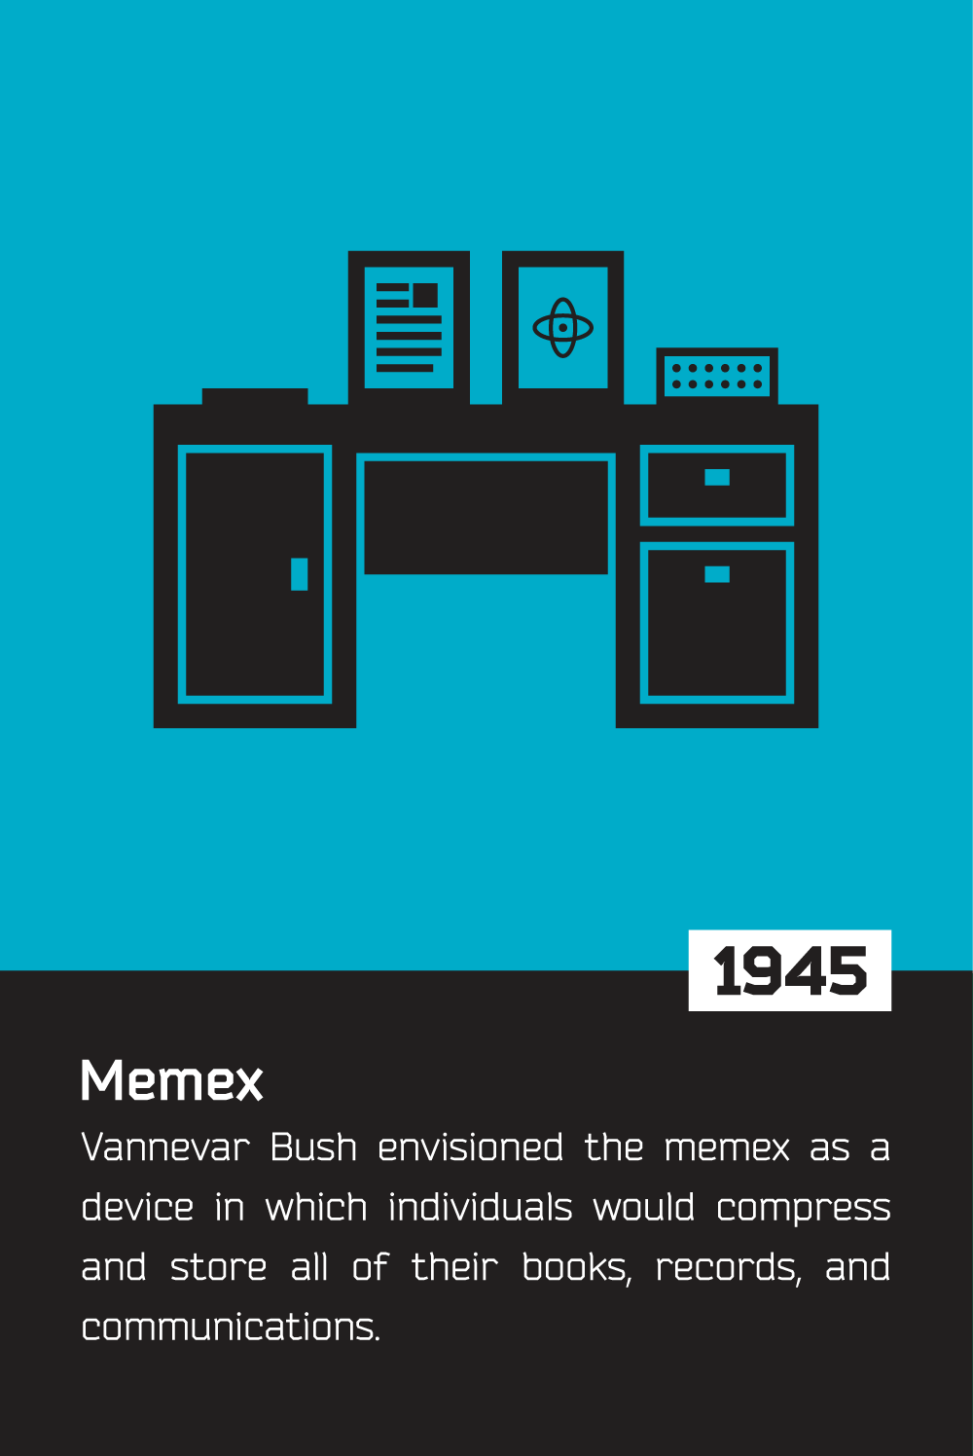 The history of the internet - memex